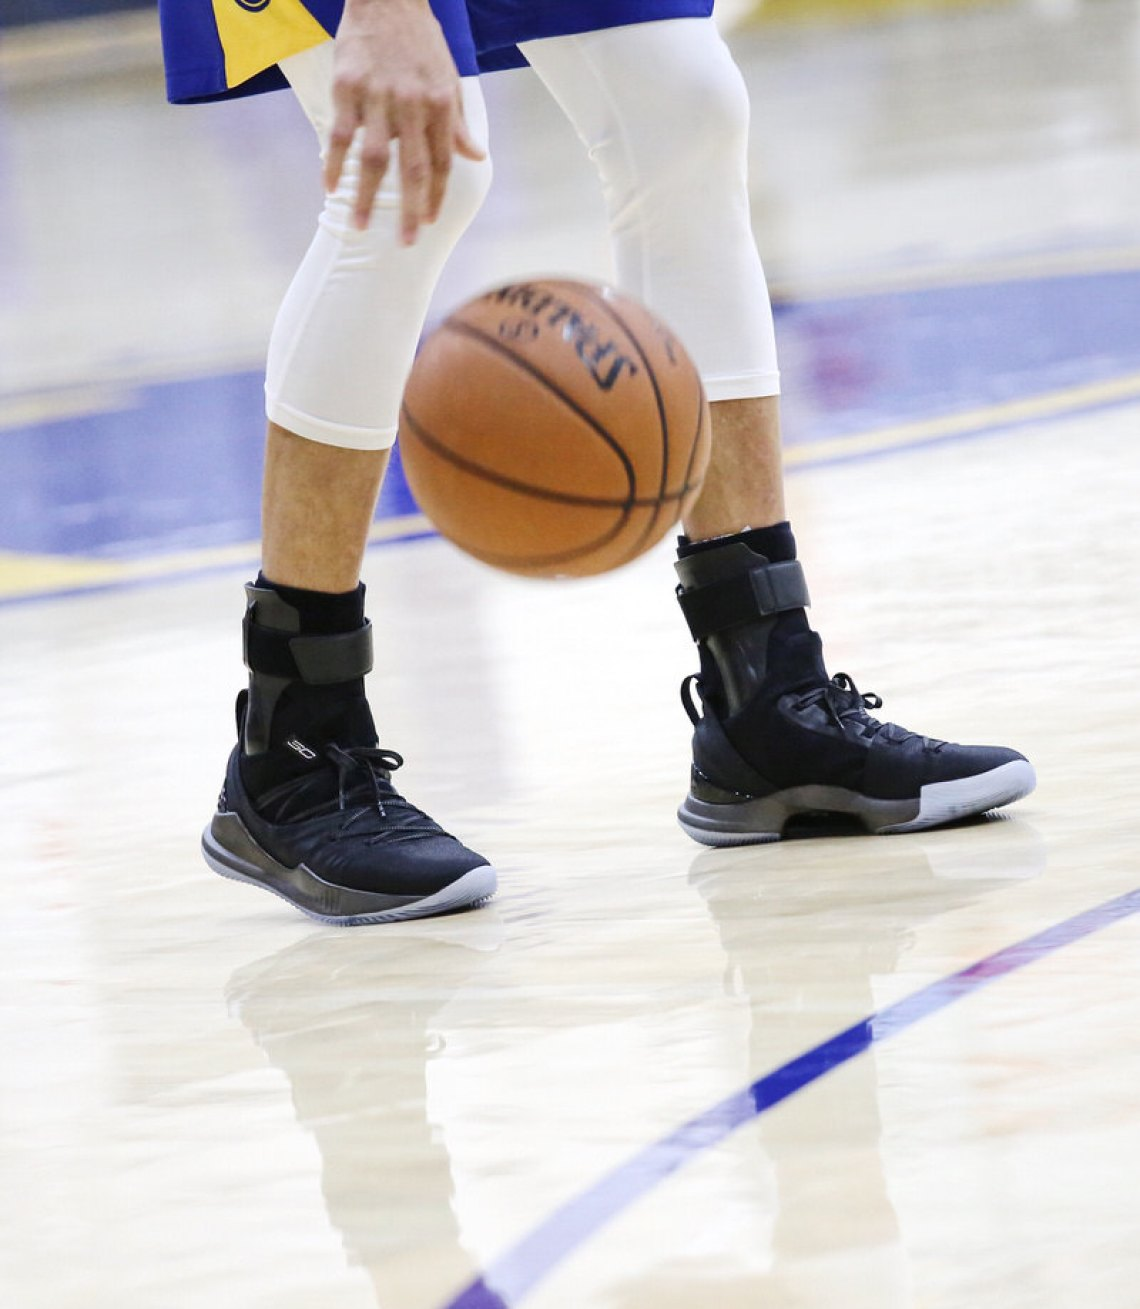 0bb8a2800fb Stephen Curry In The New Under Armour Curry 5